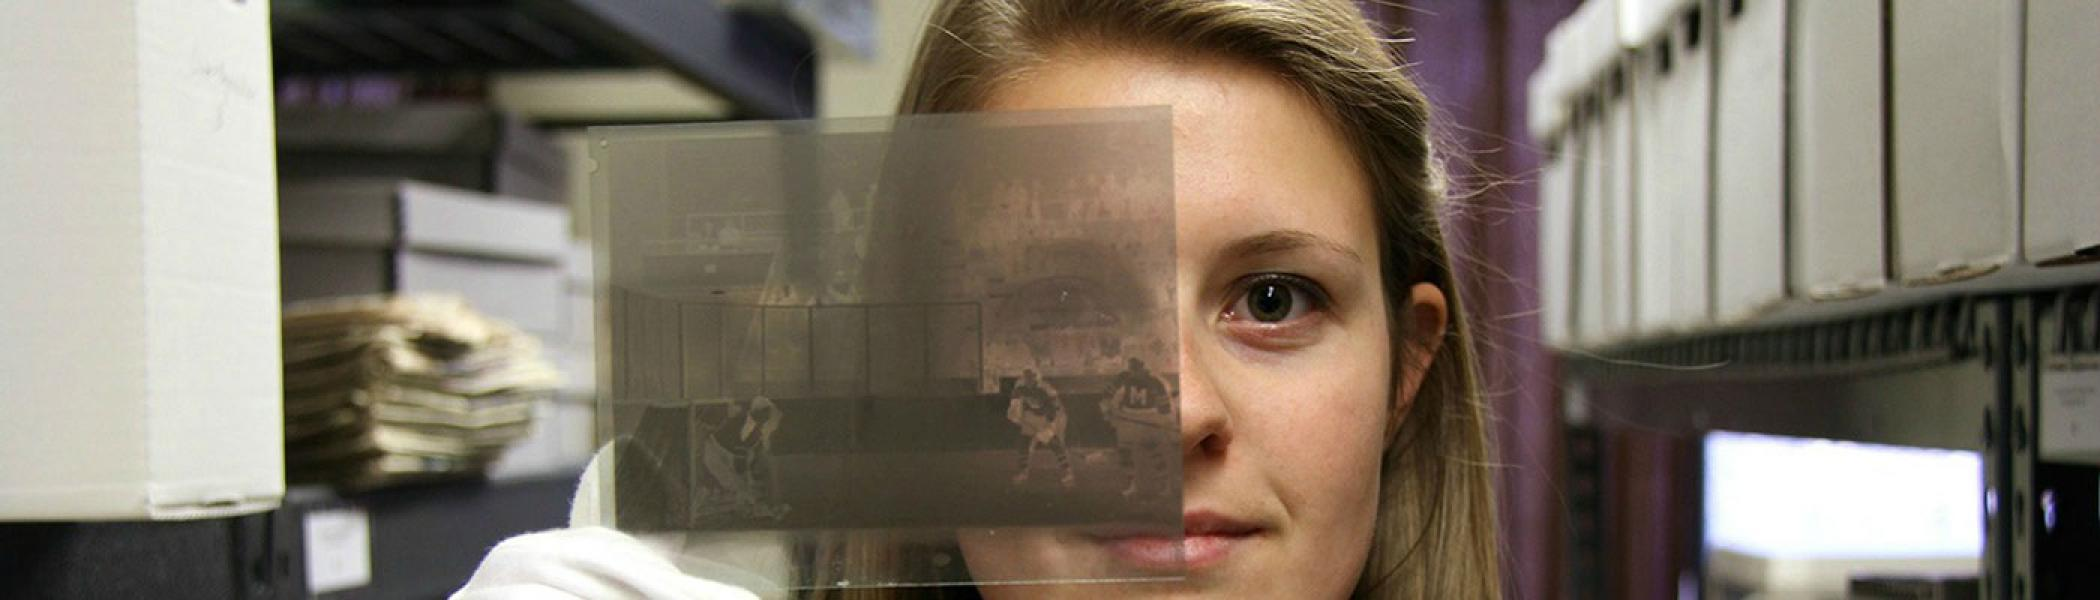 Student holding up a photo negative as part of a community-based research project.